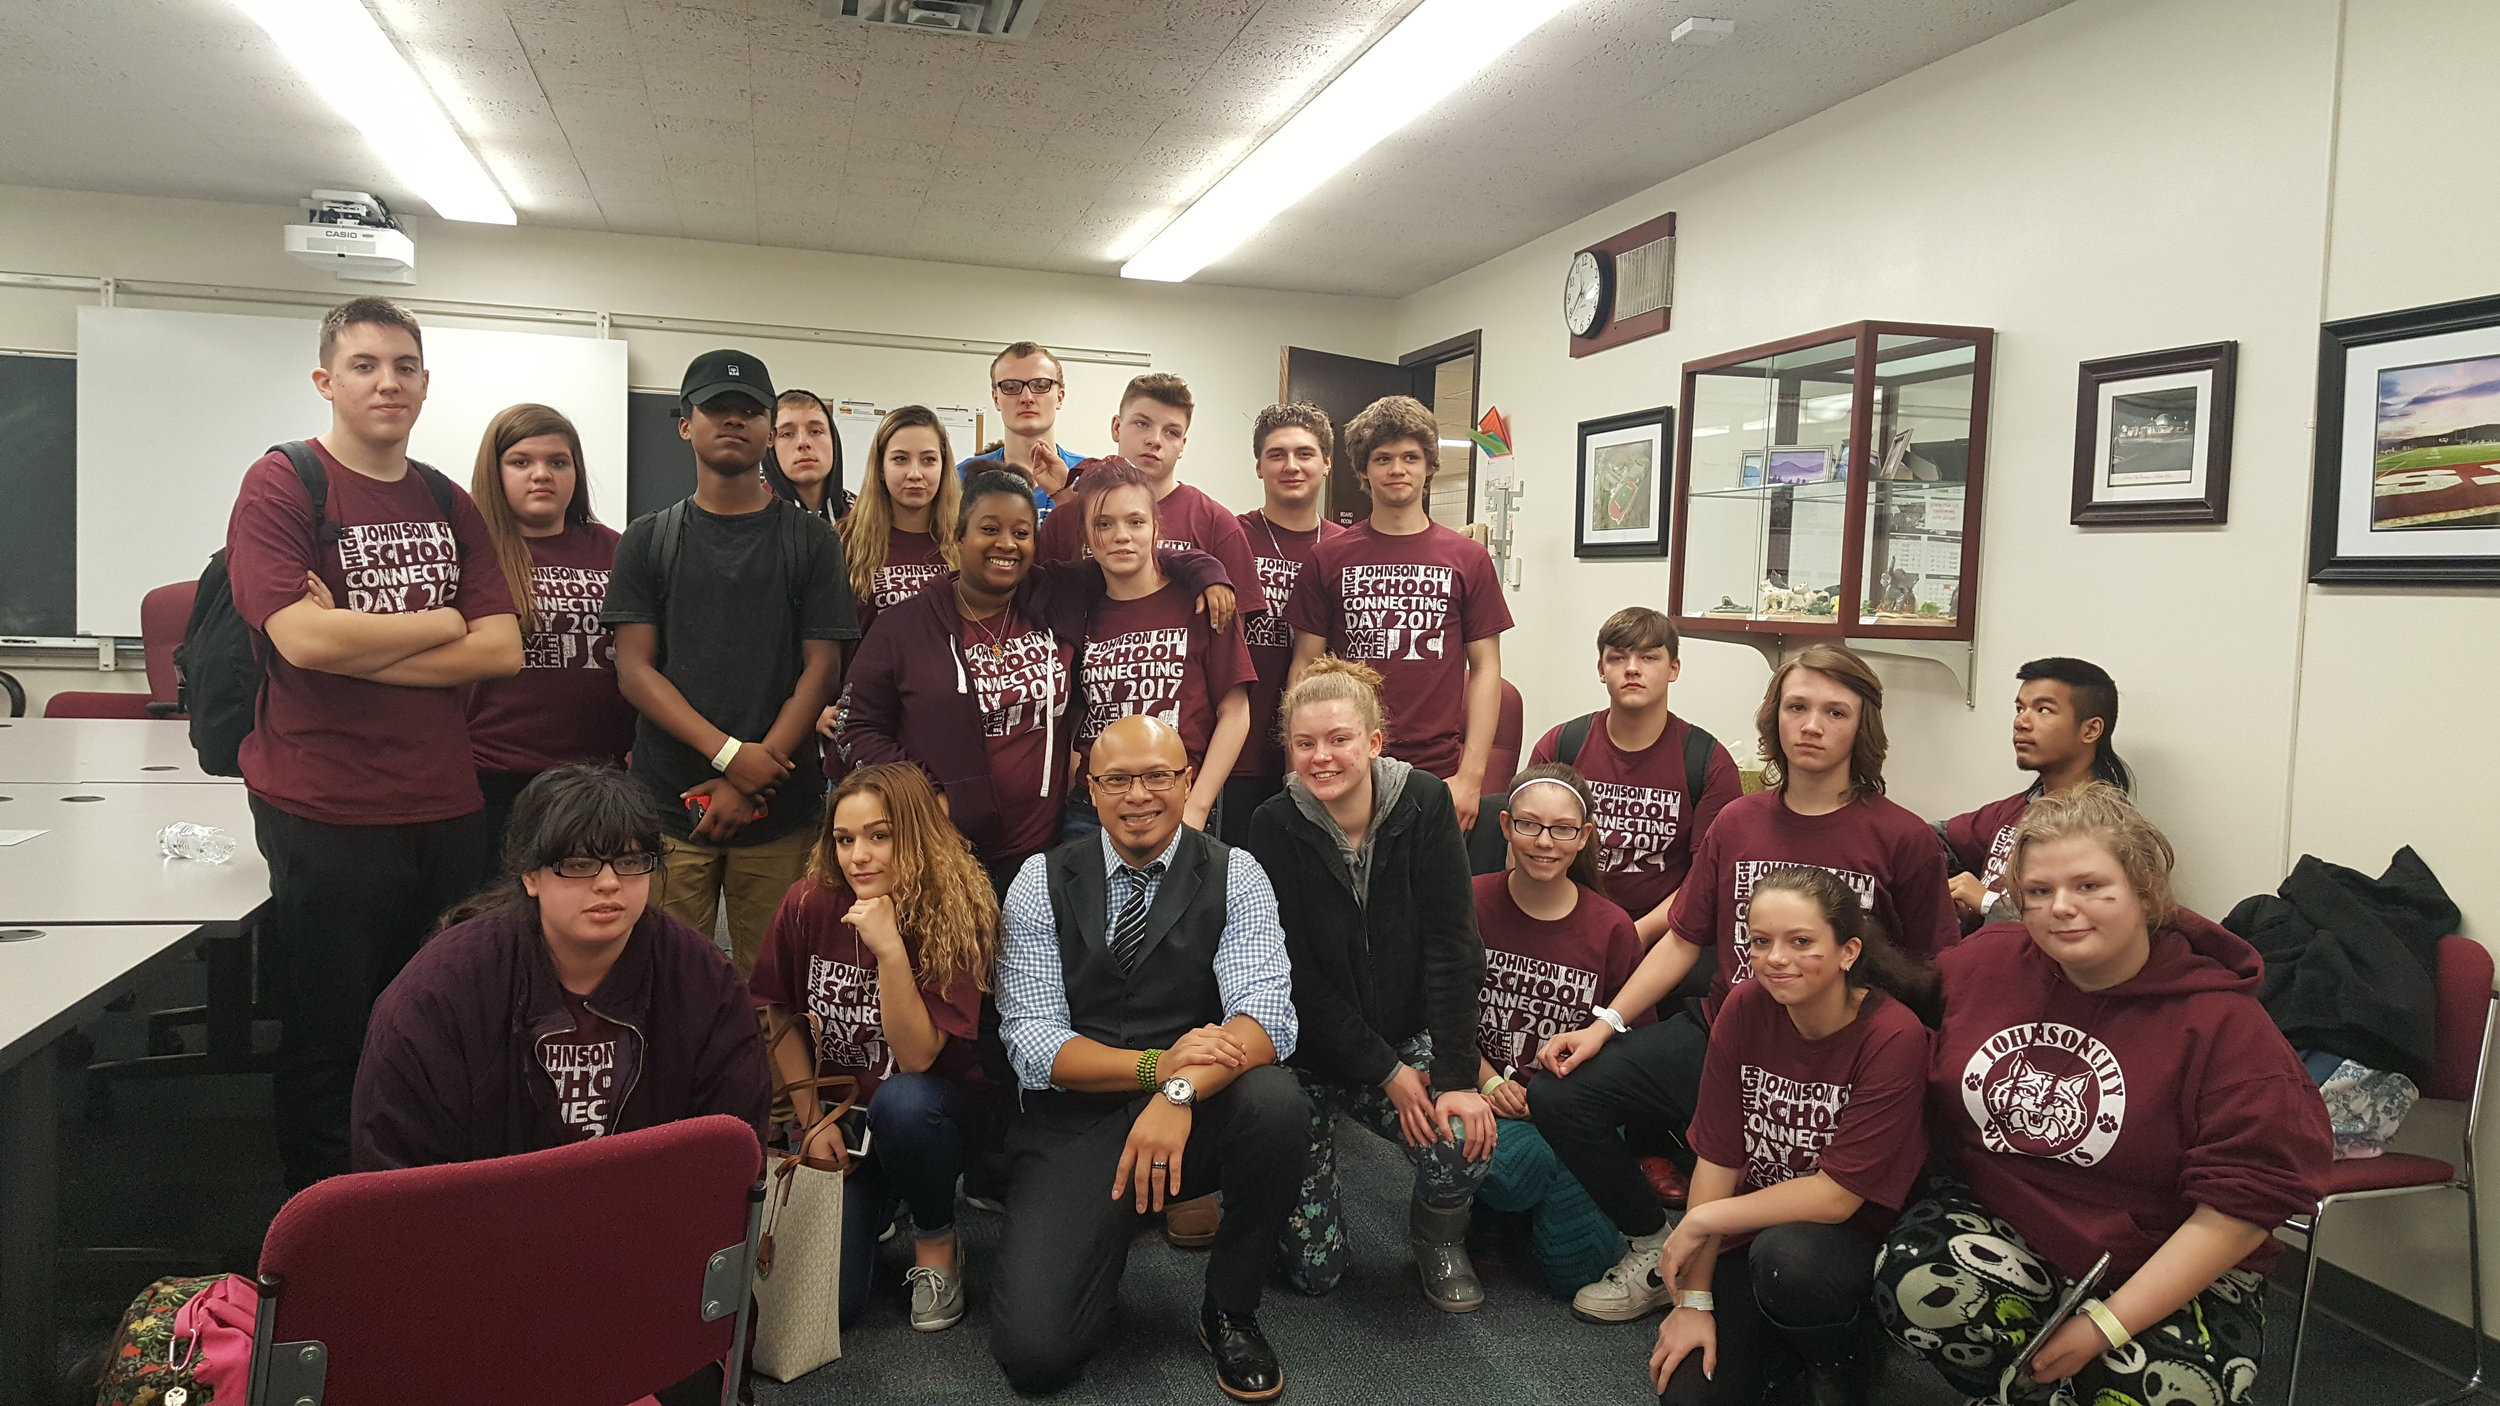 Emad with students at Johnson City High School